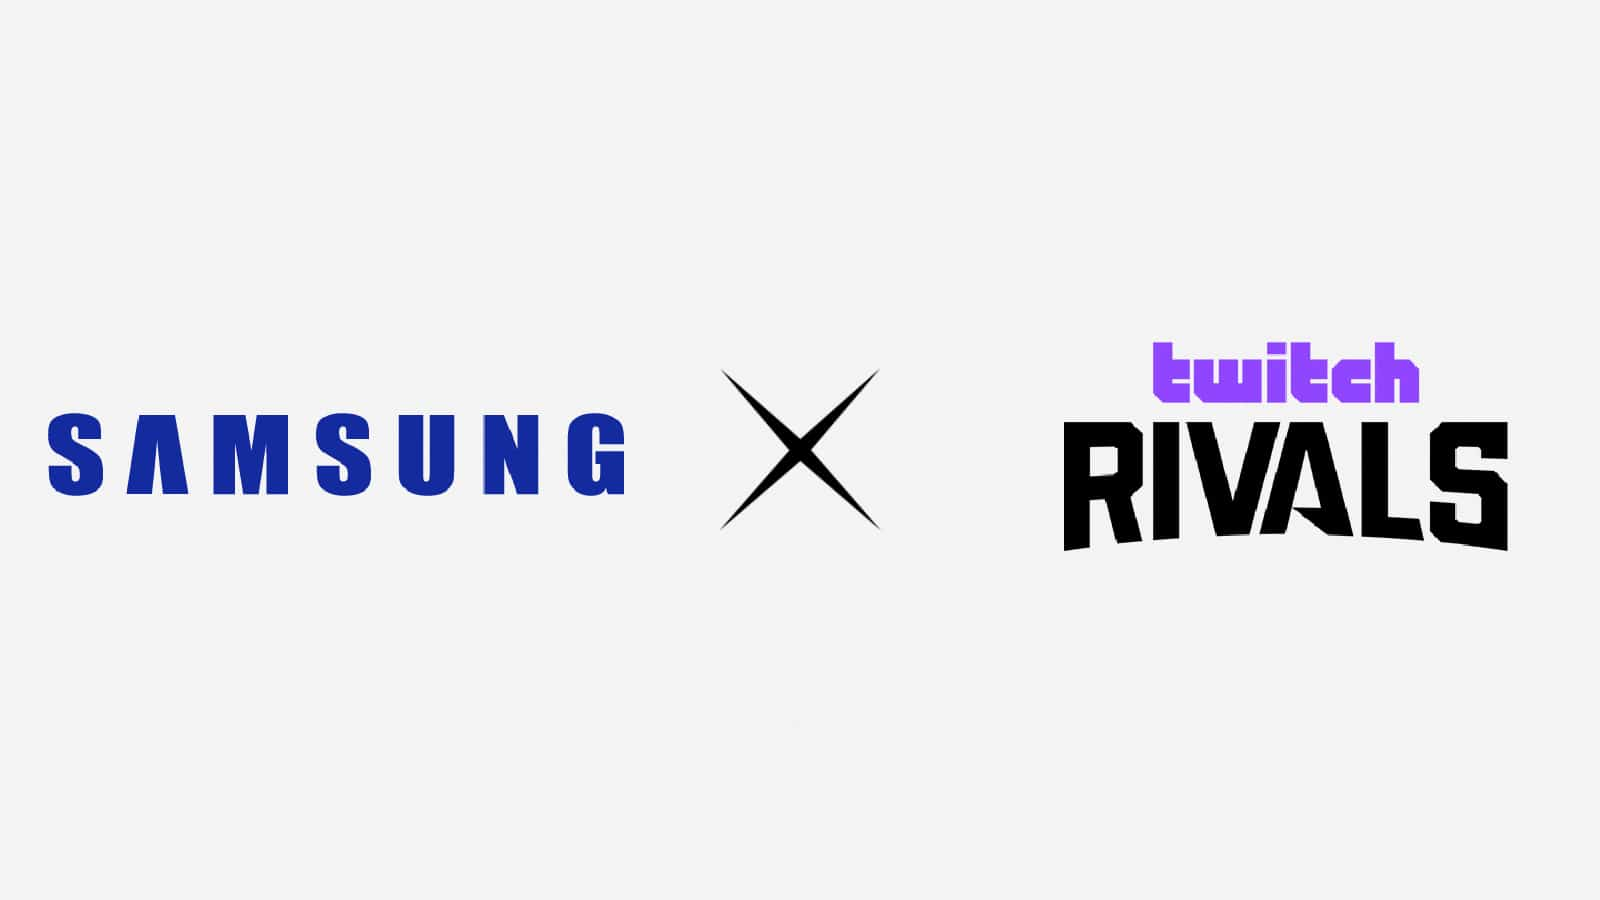 Samsung & Twitch Rivals Partnership Aims To